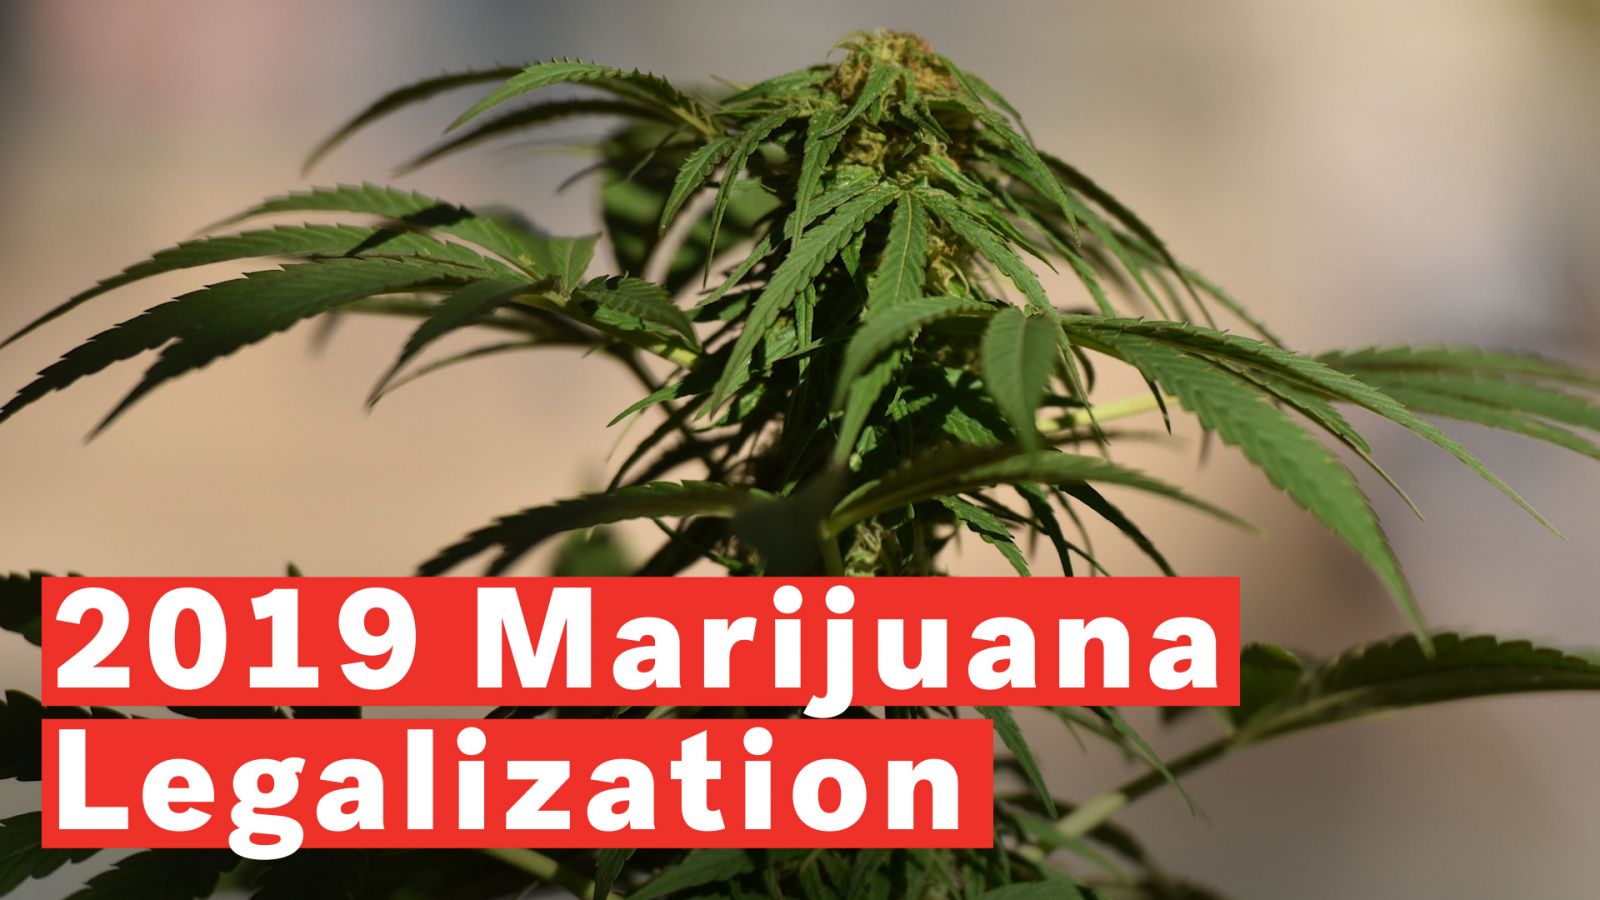 Top 5 Strongest Marijuana Strains In Terms Of THC Levels